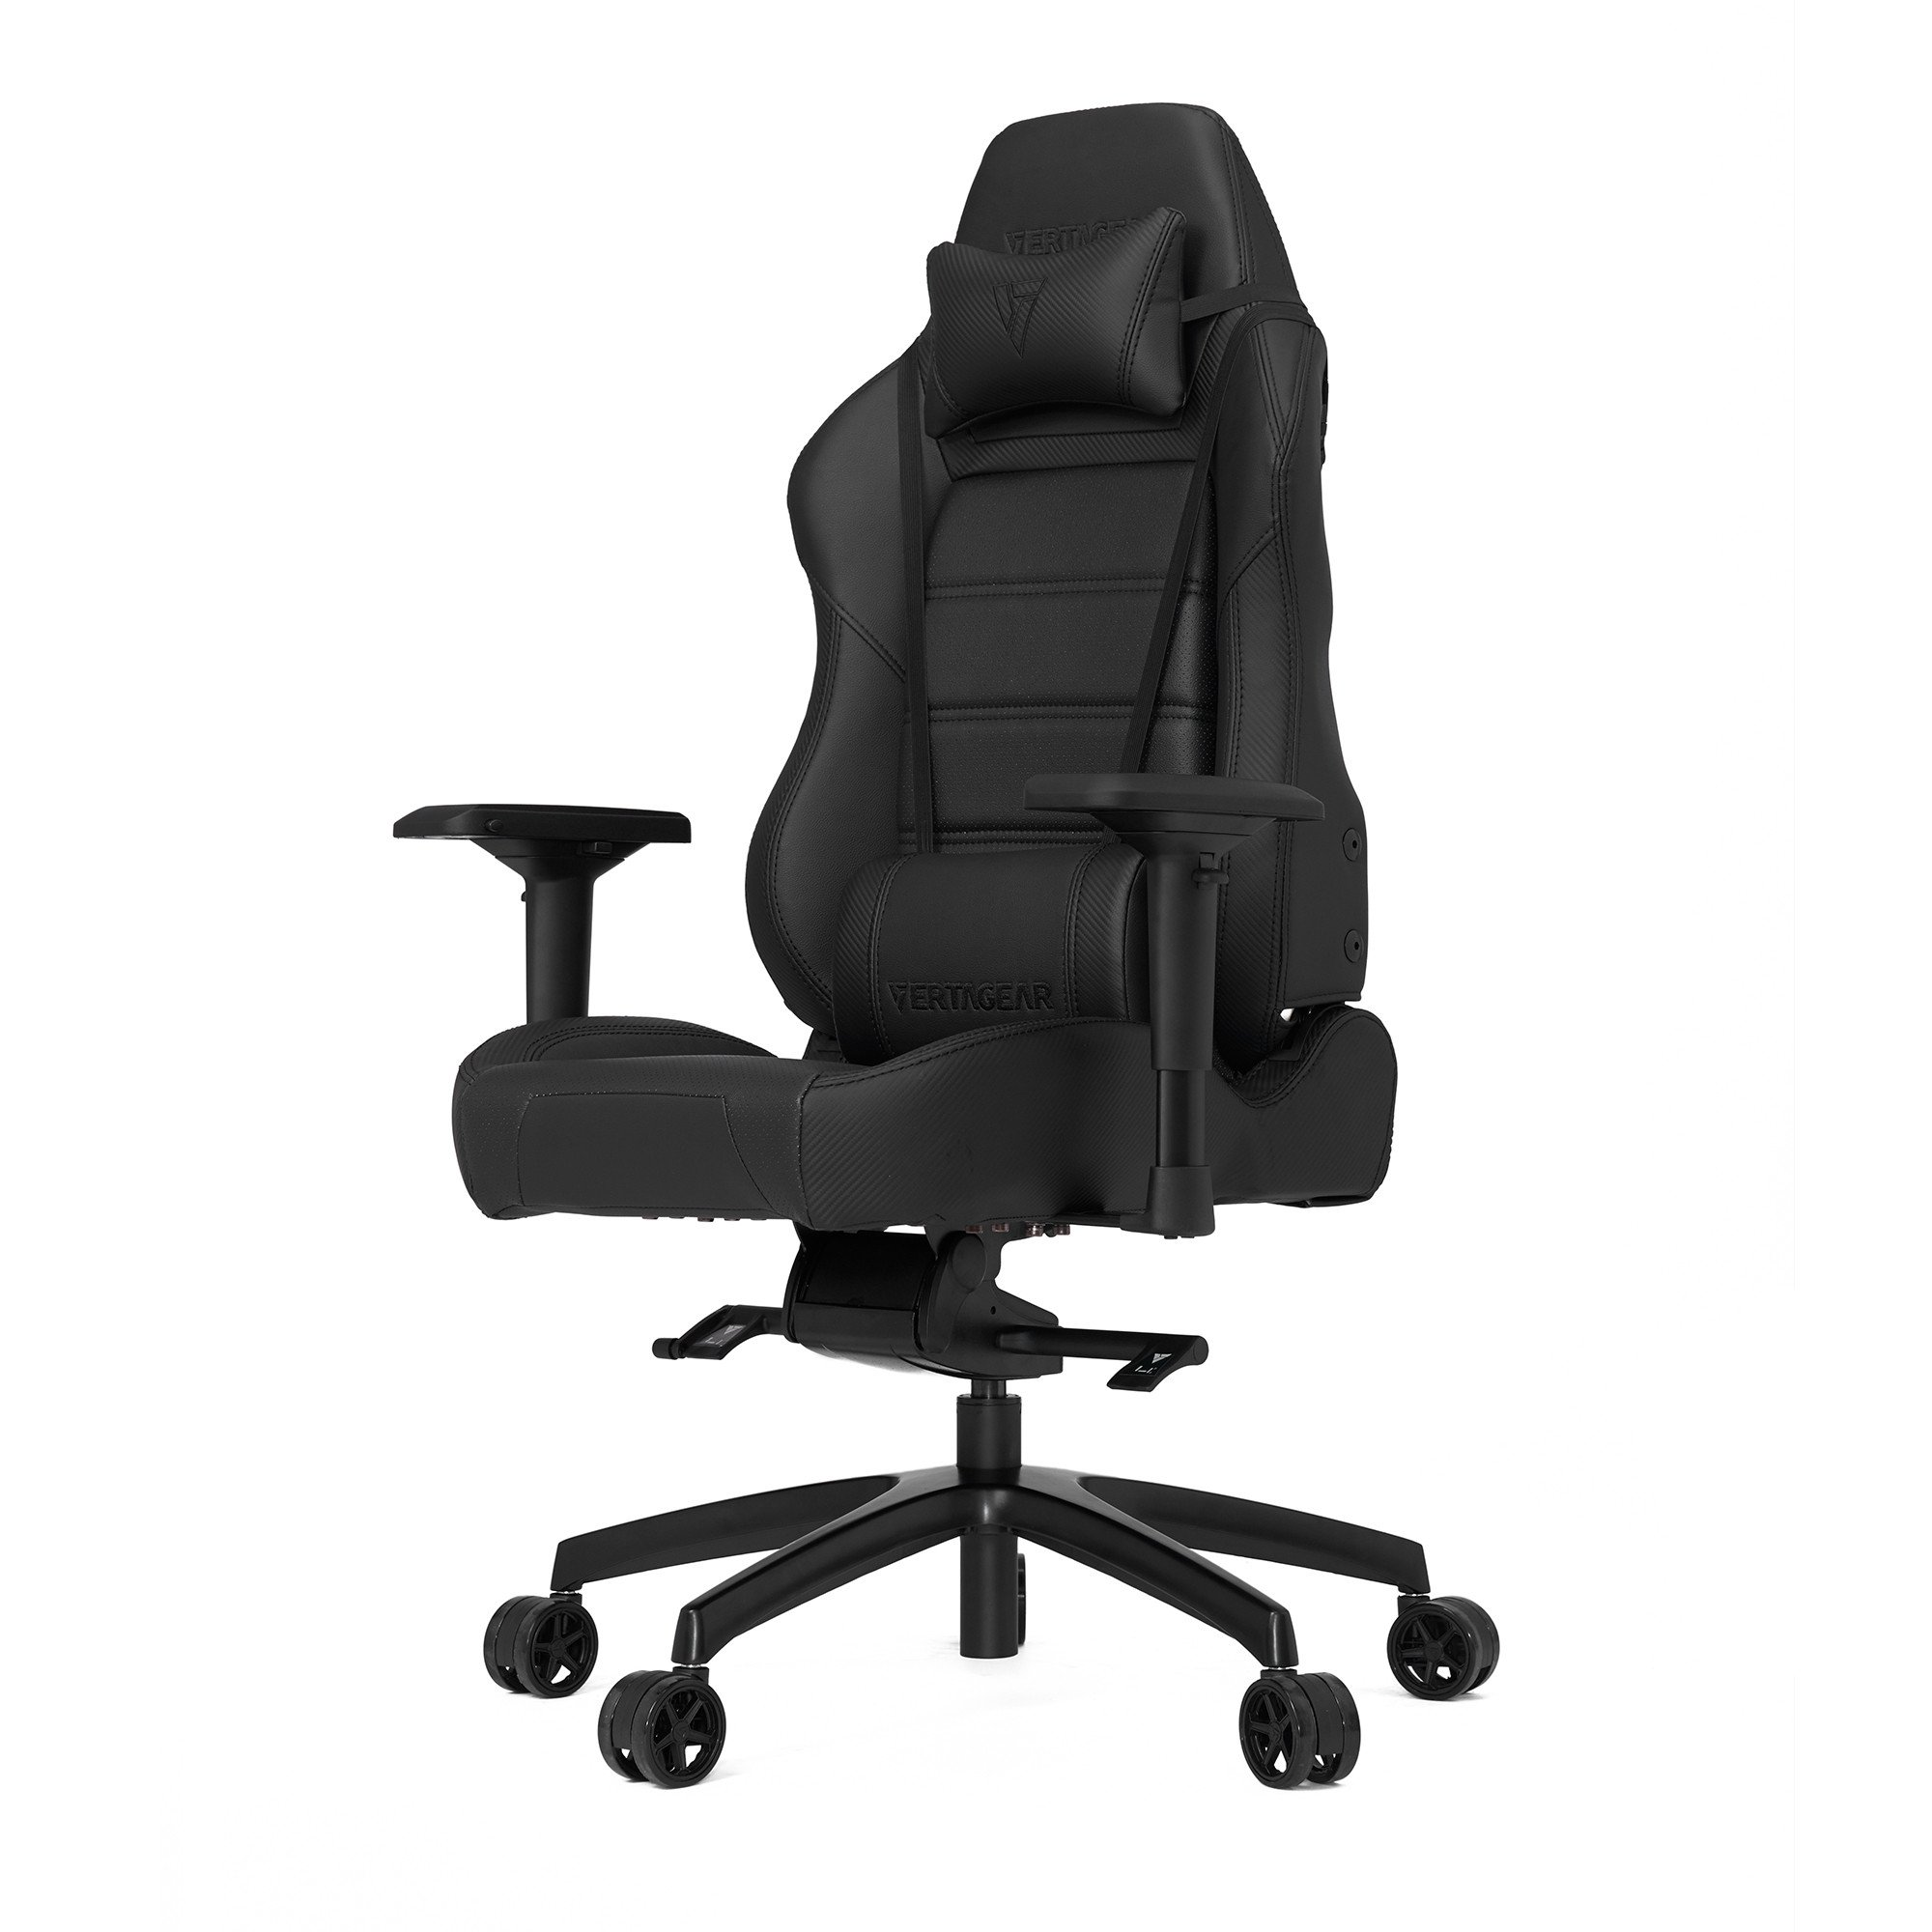 Best Gaming Chair of 2019.